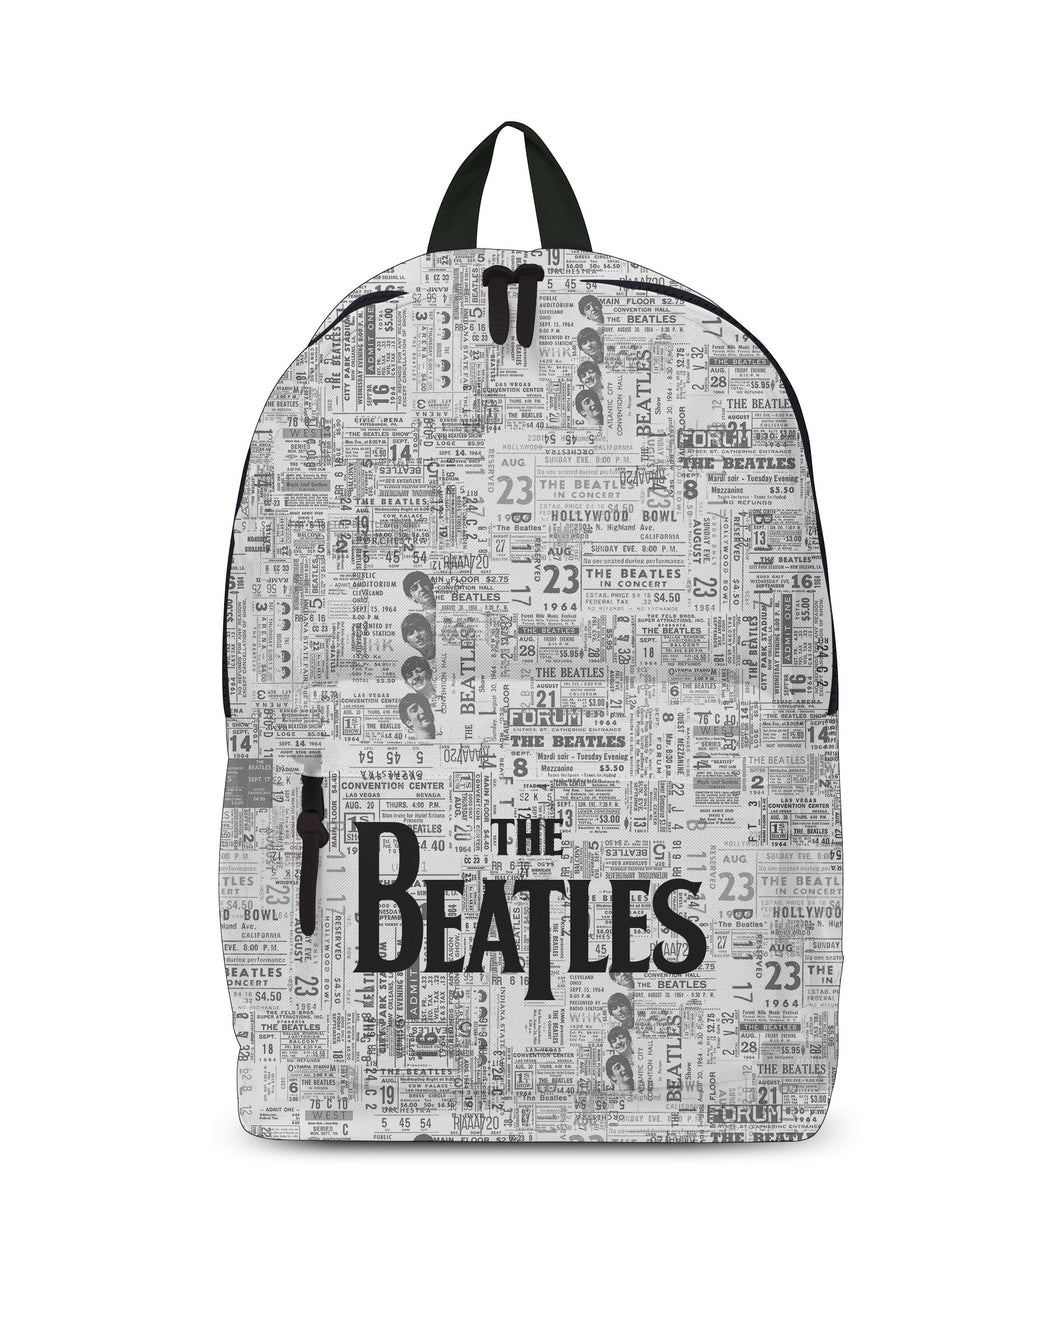 The Beatles - Backpack -  Tickets - Grandad shirt club